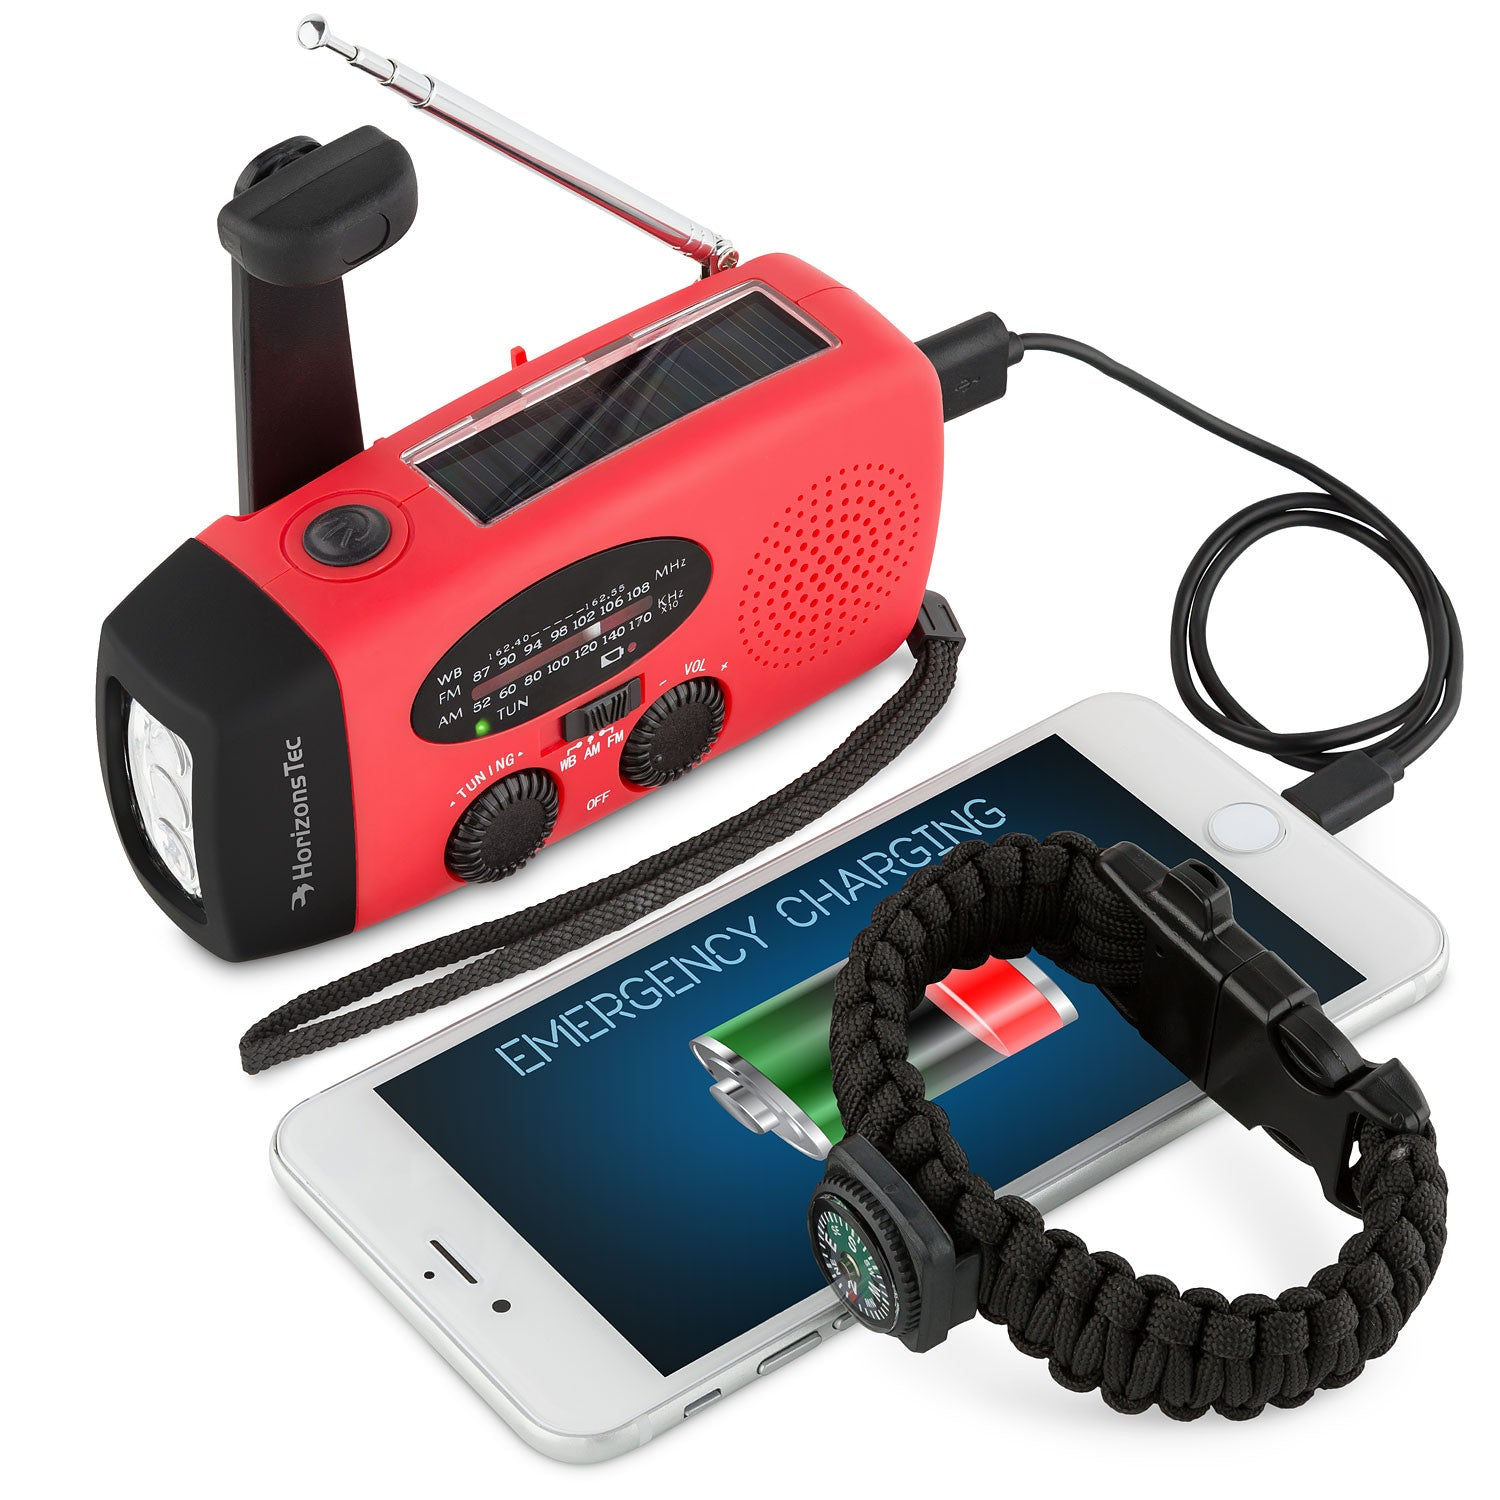 https://horizonstecsurvivalgear.com/collections/camp-energy-radio/products/noaa-ht-746-weather-emergency-radio